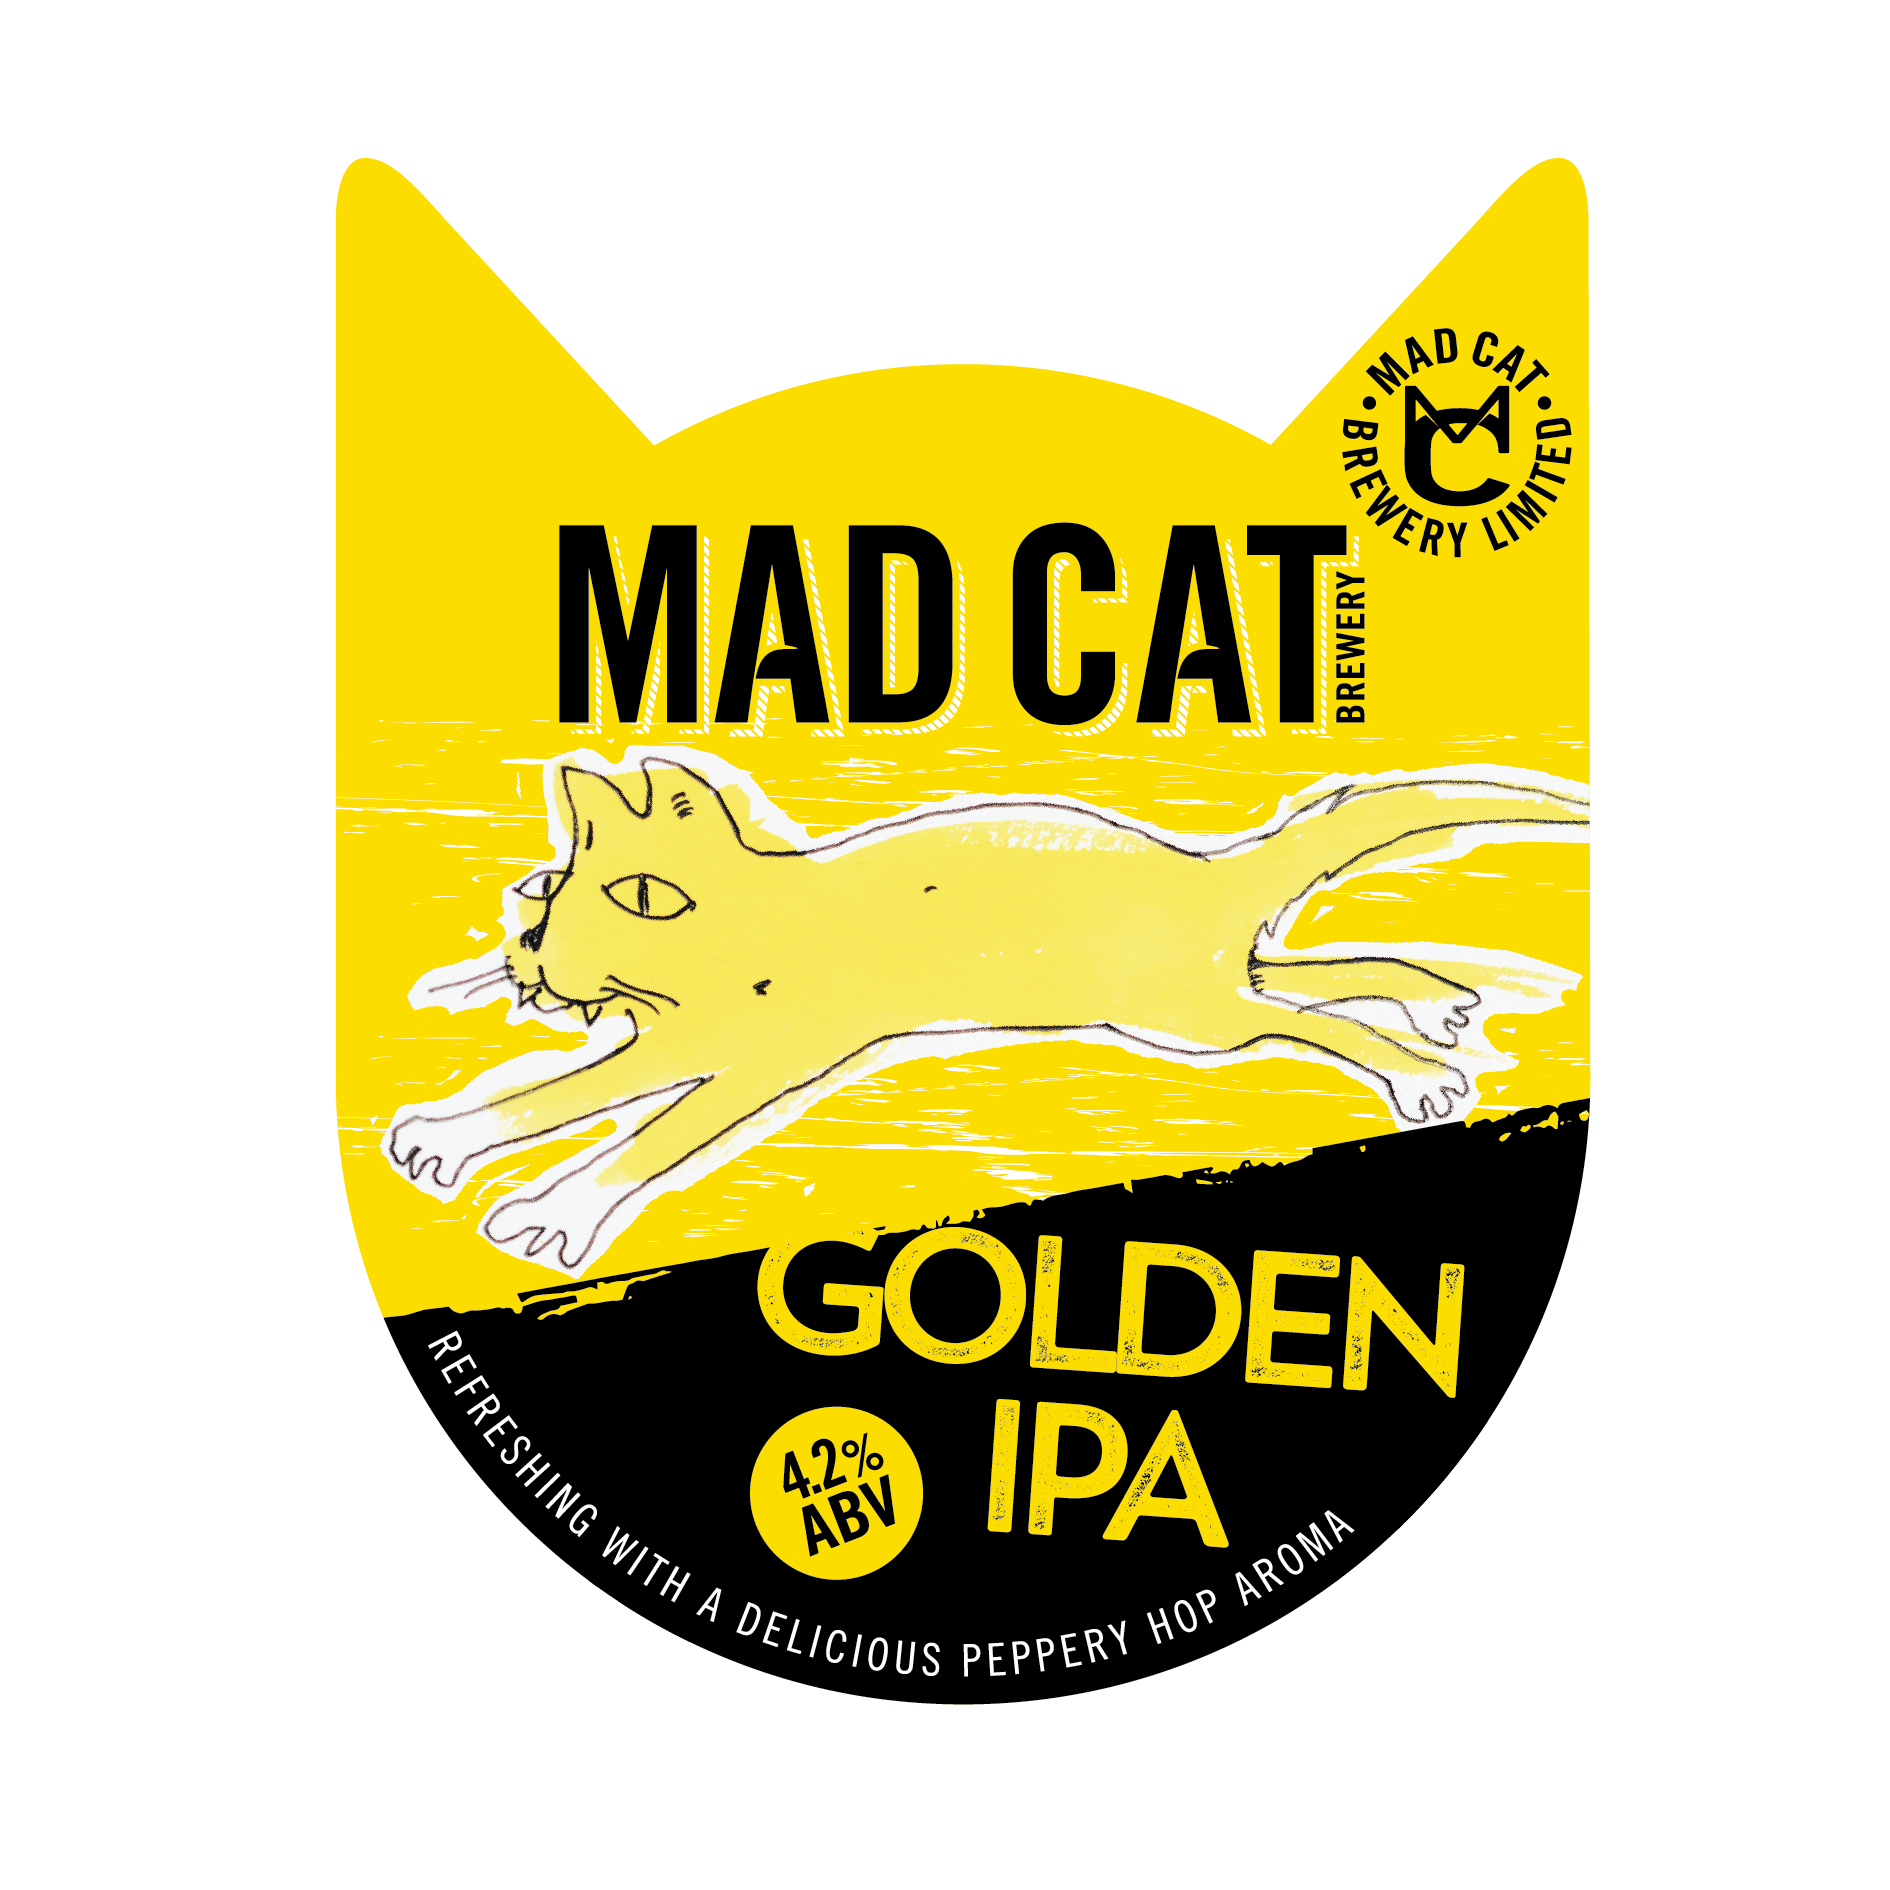 Golden IPA pump clip mad cat ales